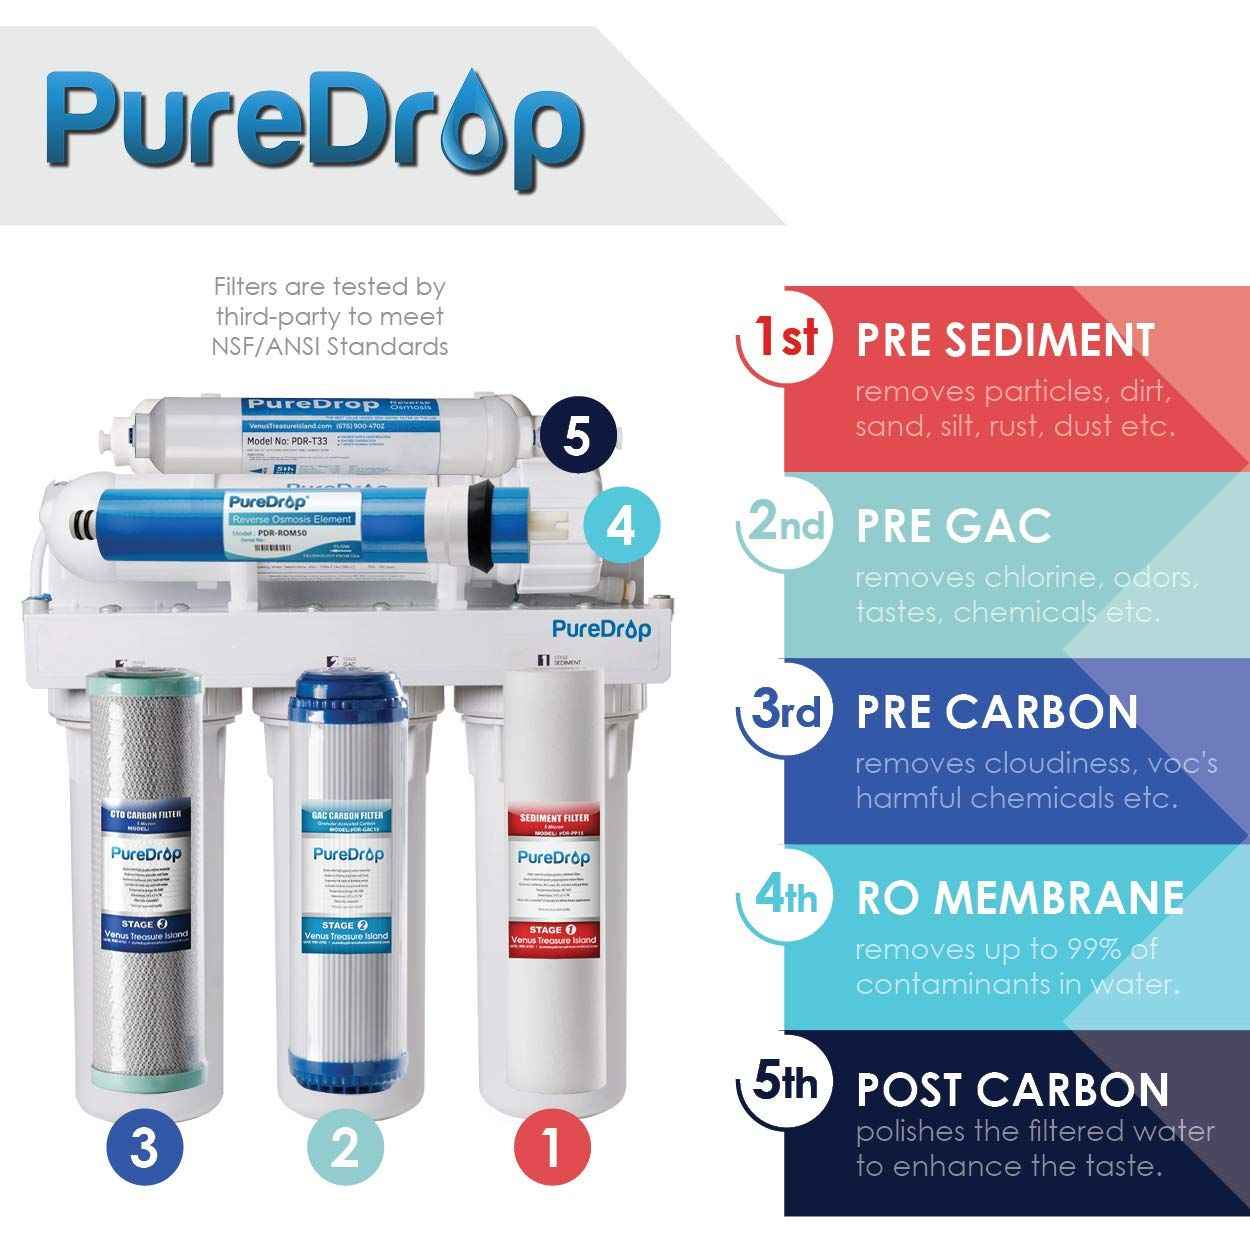 Puredrop Rtw5 Under Under Sink 5 Stage Reverse Osmosis Drinking Water Filtration System With Extra Pre Filter S Reverse Osmosis Water Filtration System Osmosis